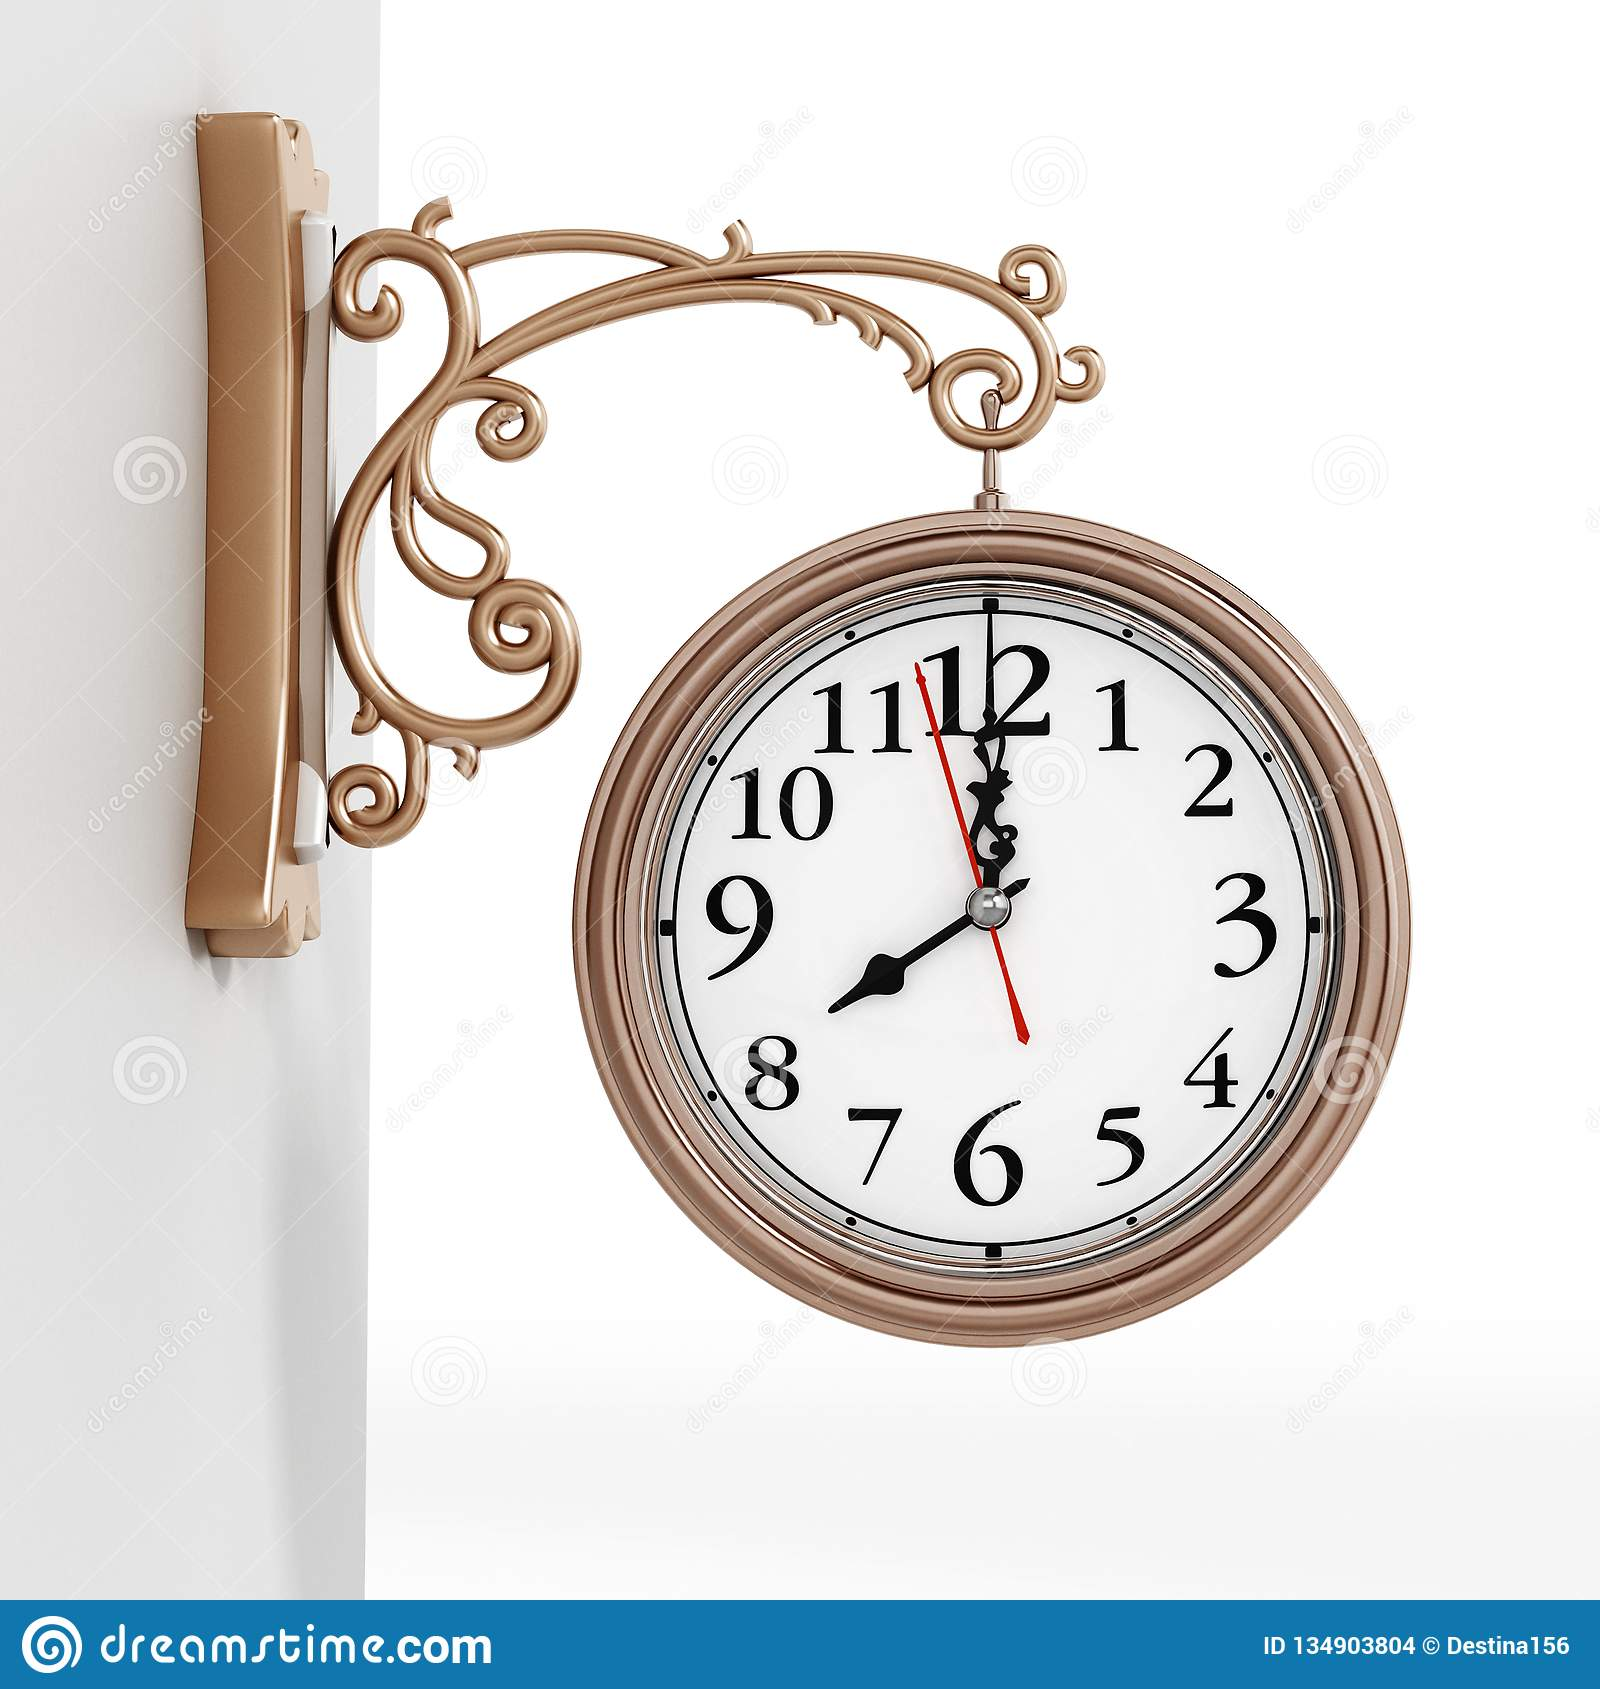 Vintage wall clock isolated on white background. 3D illustration